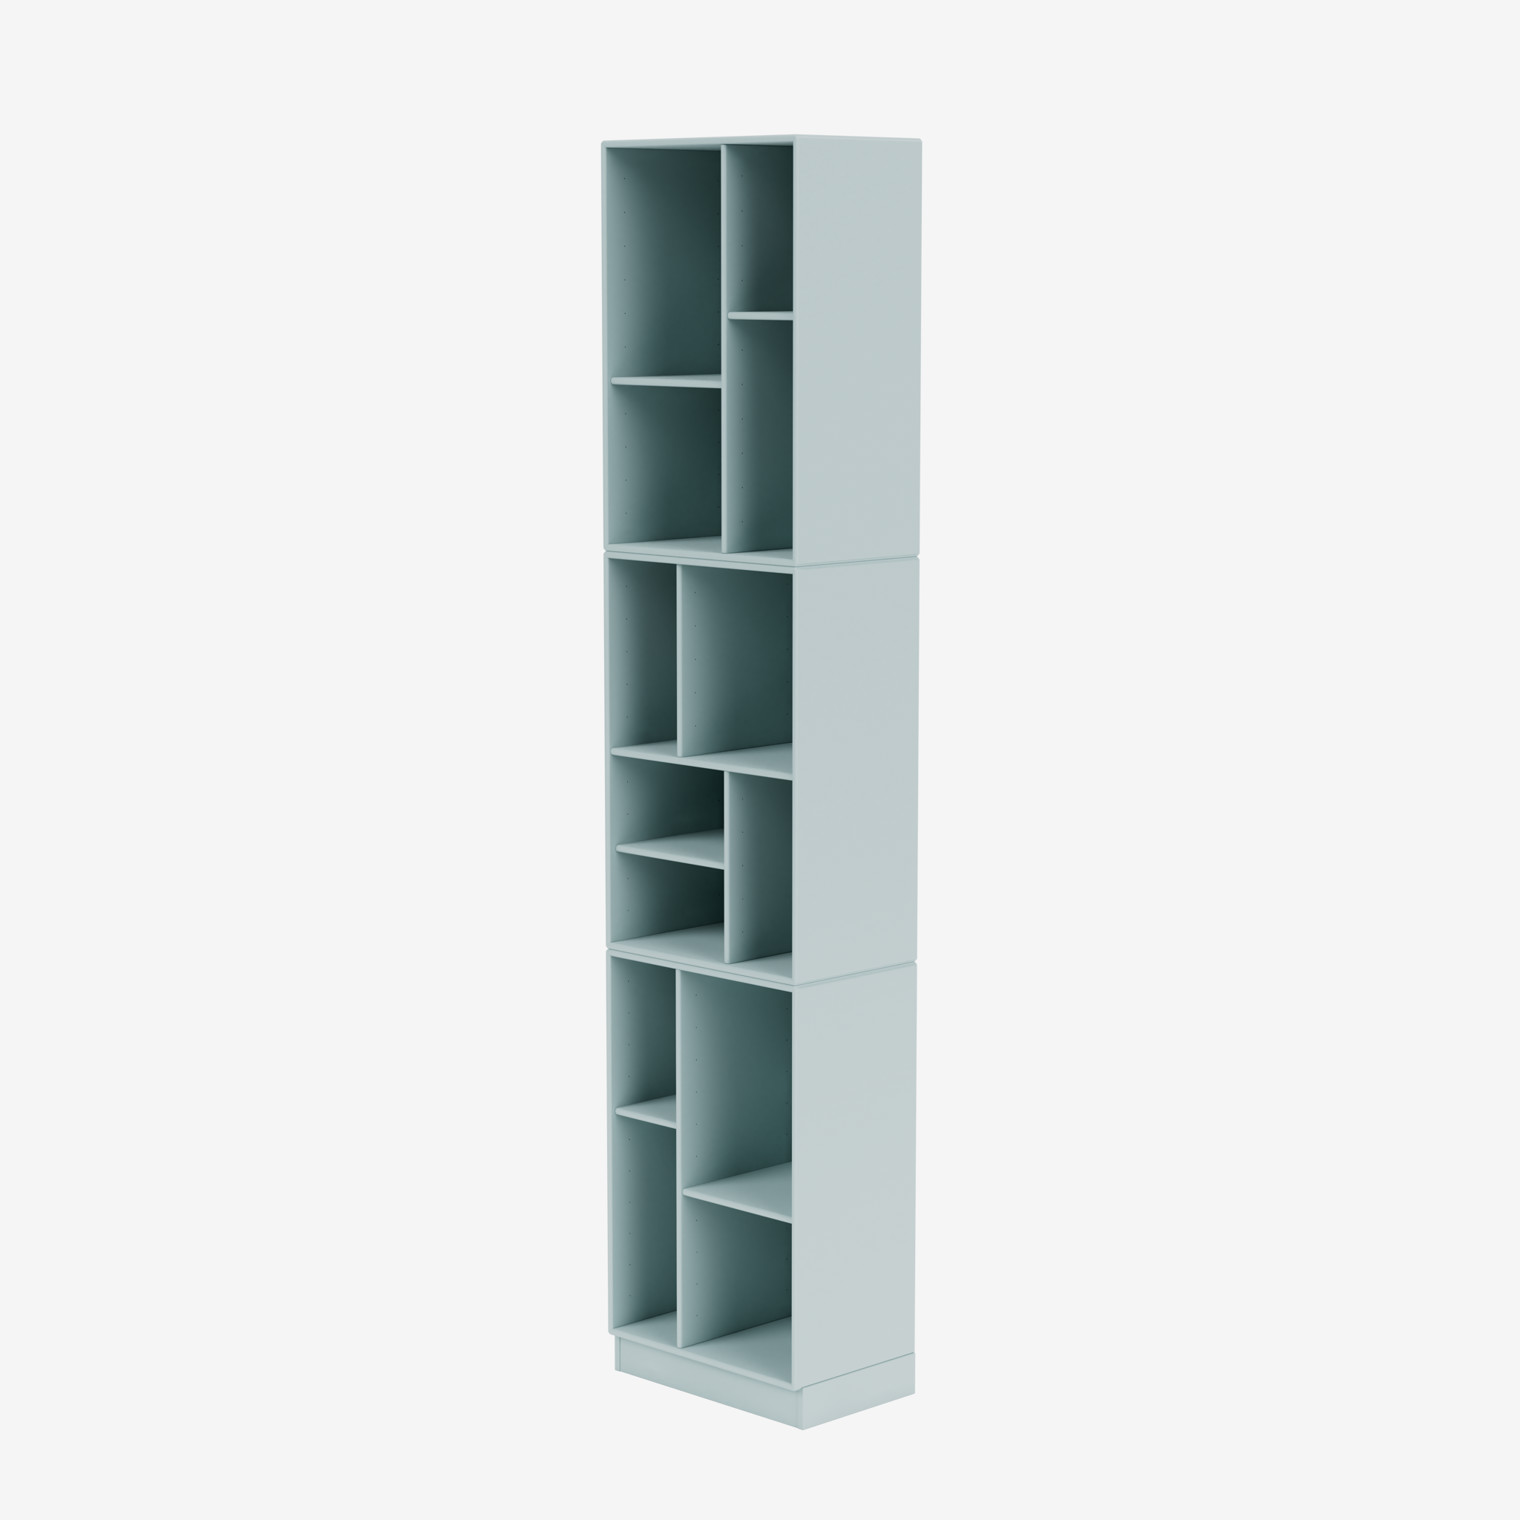 LOOM slim bookcase